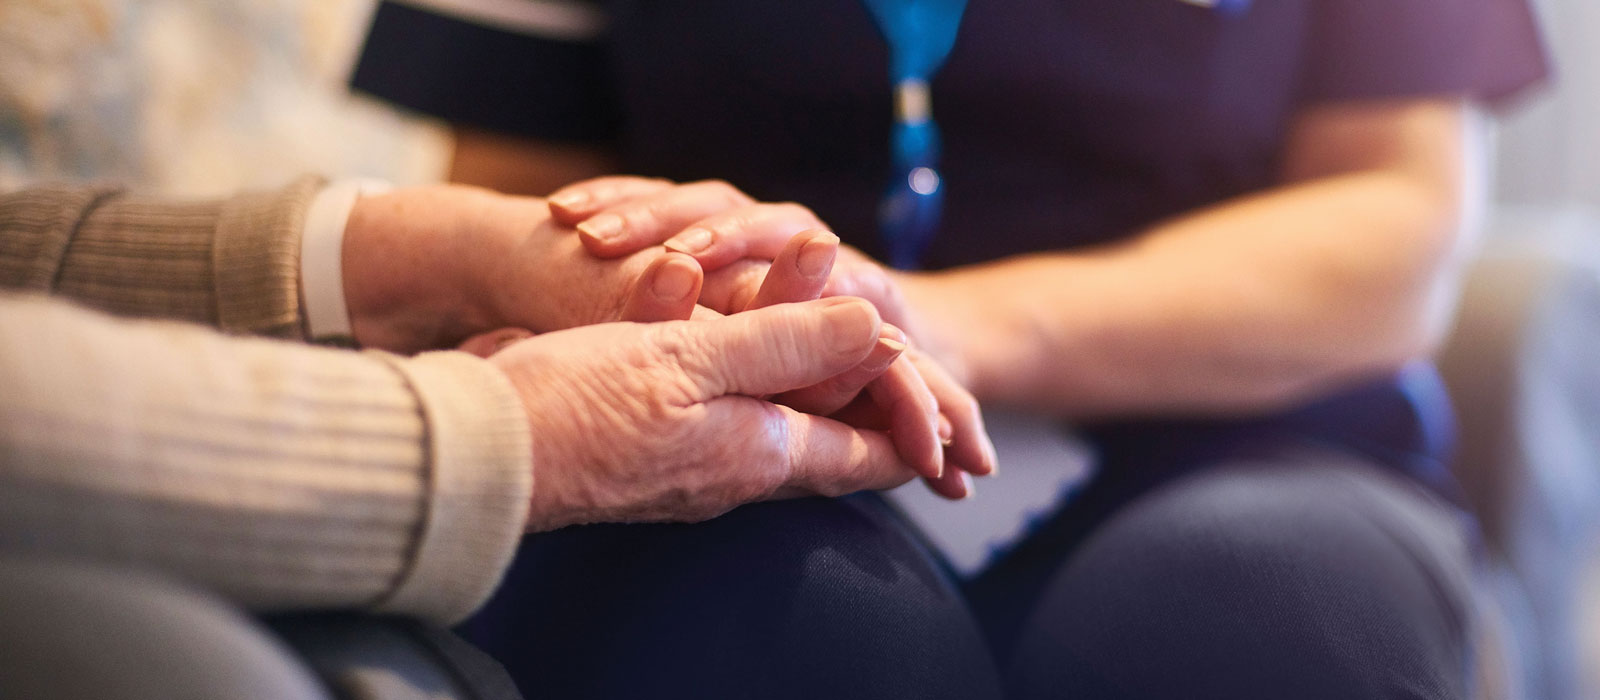 Palliative Care Resources Comfort Nurses Through COVID-19 Stress, Dilemmas, and Grief